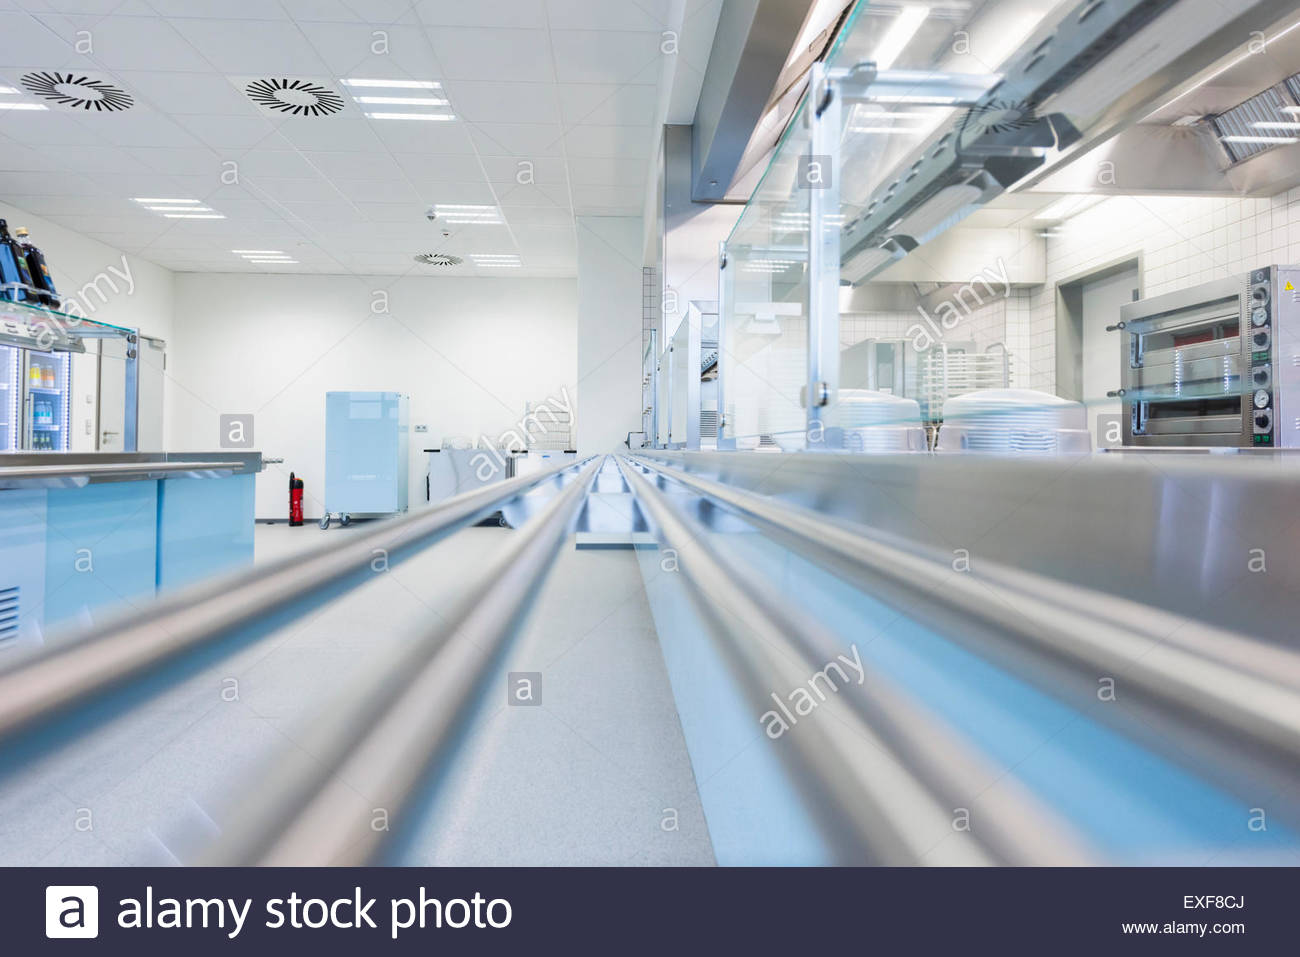 Empty factory canteen with tray rails and serving hatch - Stock Image